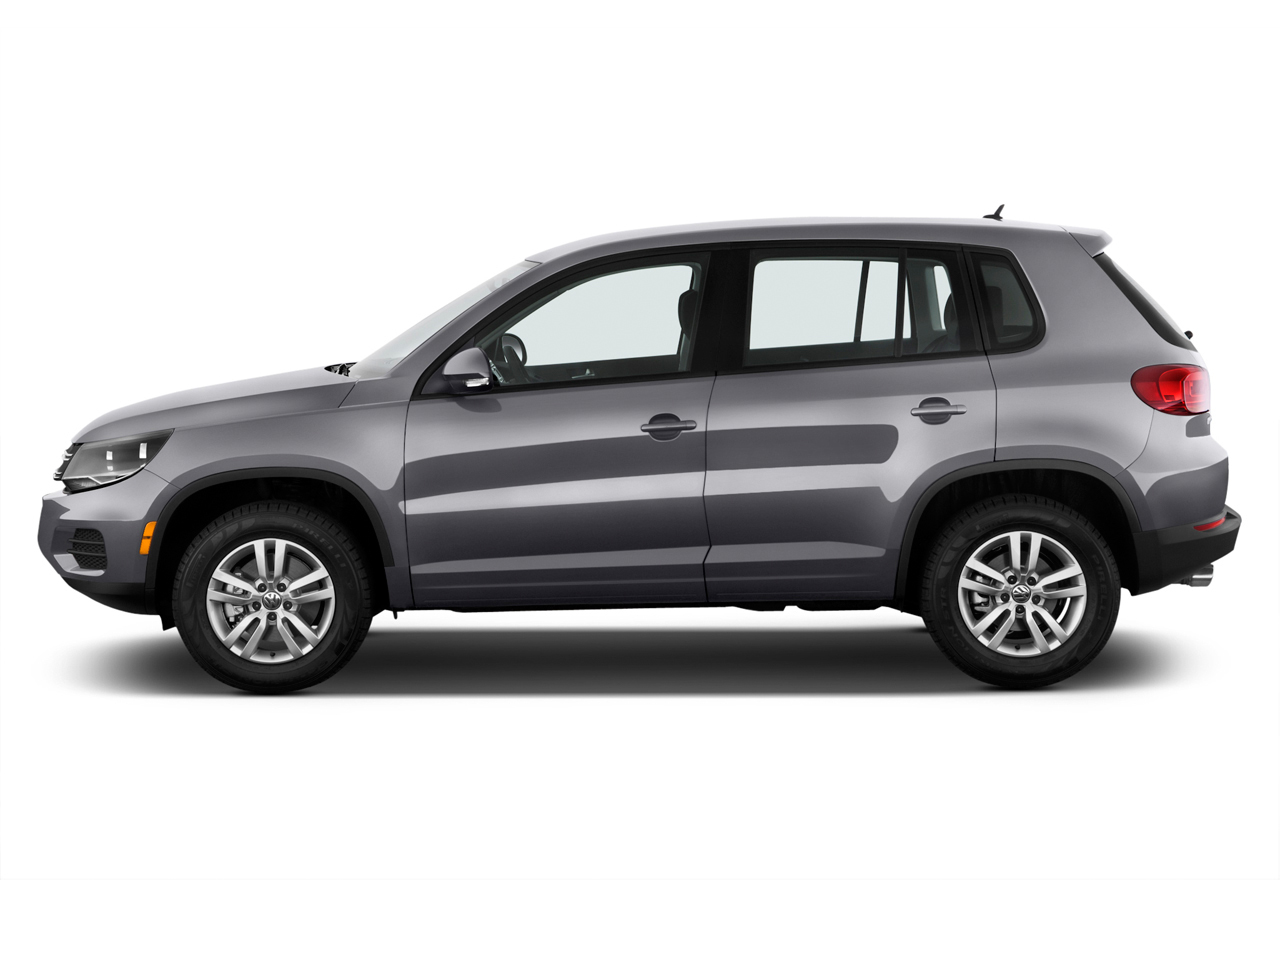 2012 volkswagen tiguan vw review ratings specs prices and photos the car connection. Black Bedroom Furniture Sets. Home Design Ideas